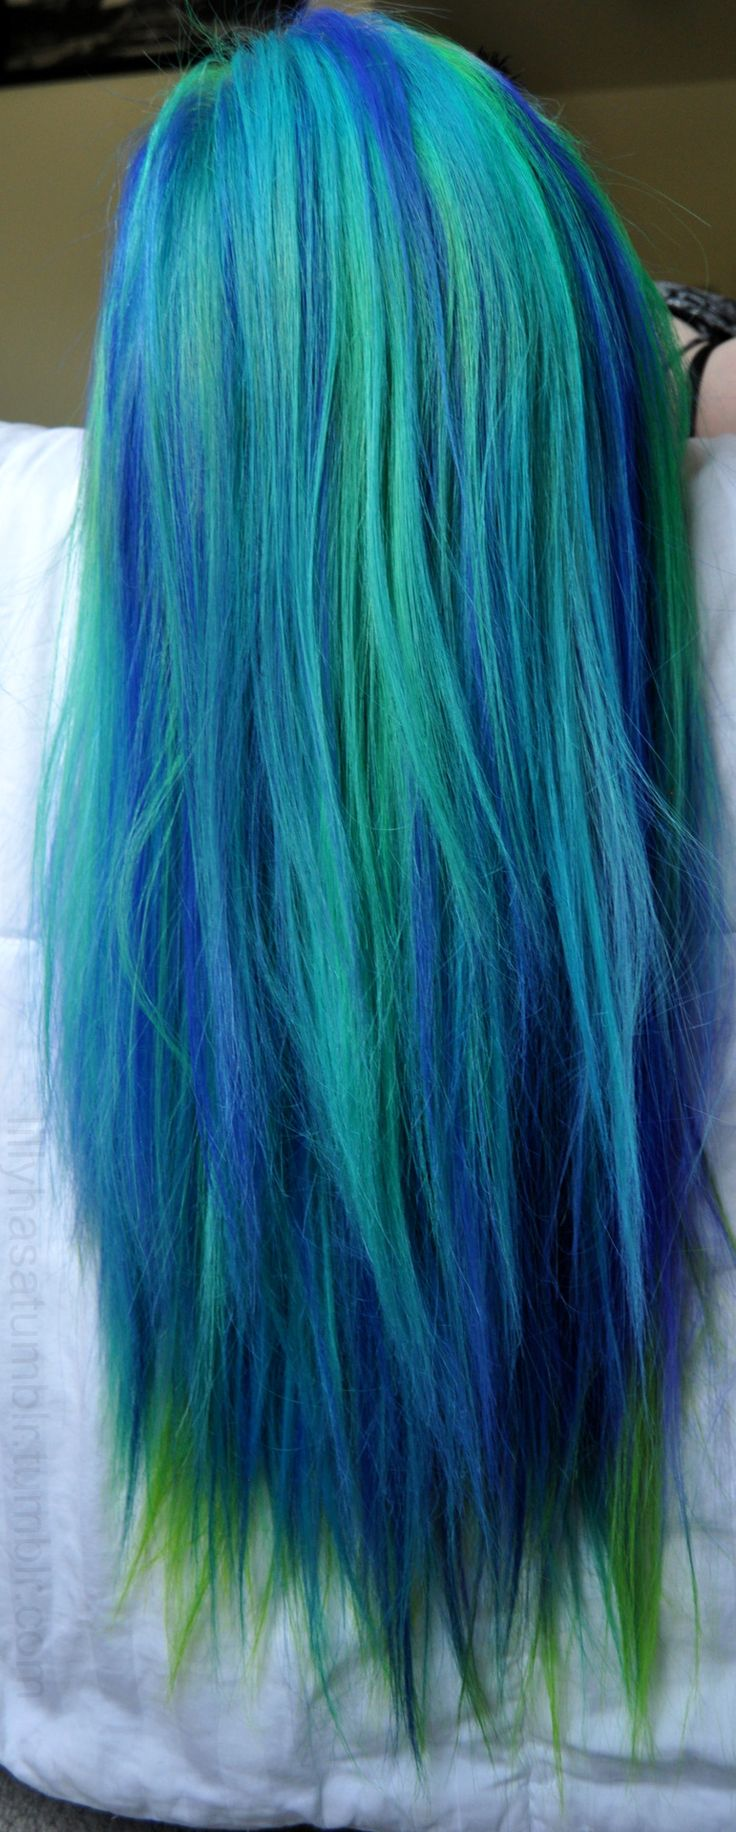 image Bright blue hair perfect girl masturbate